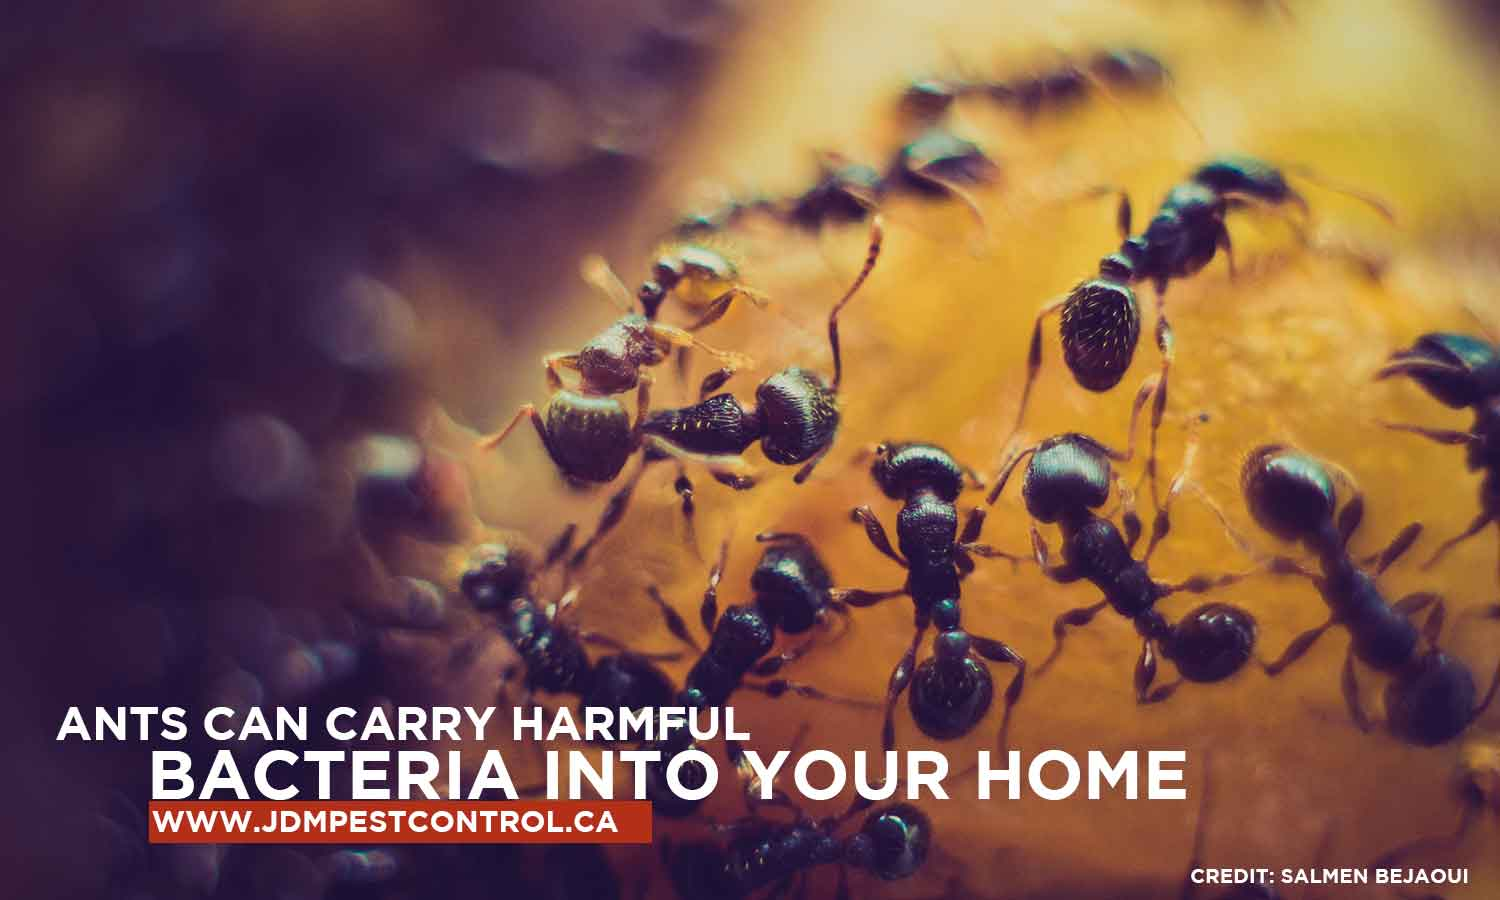 Ants can carry harmful bacteria into your home